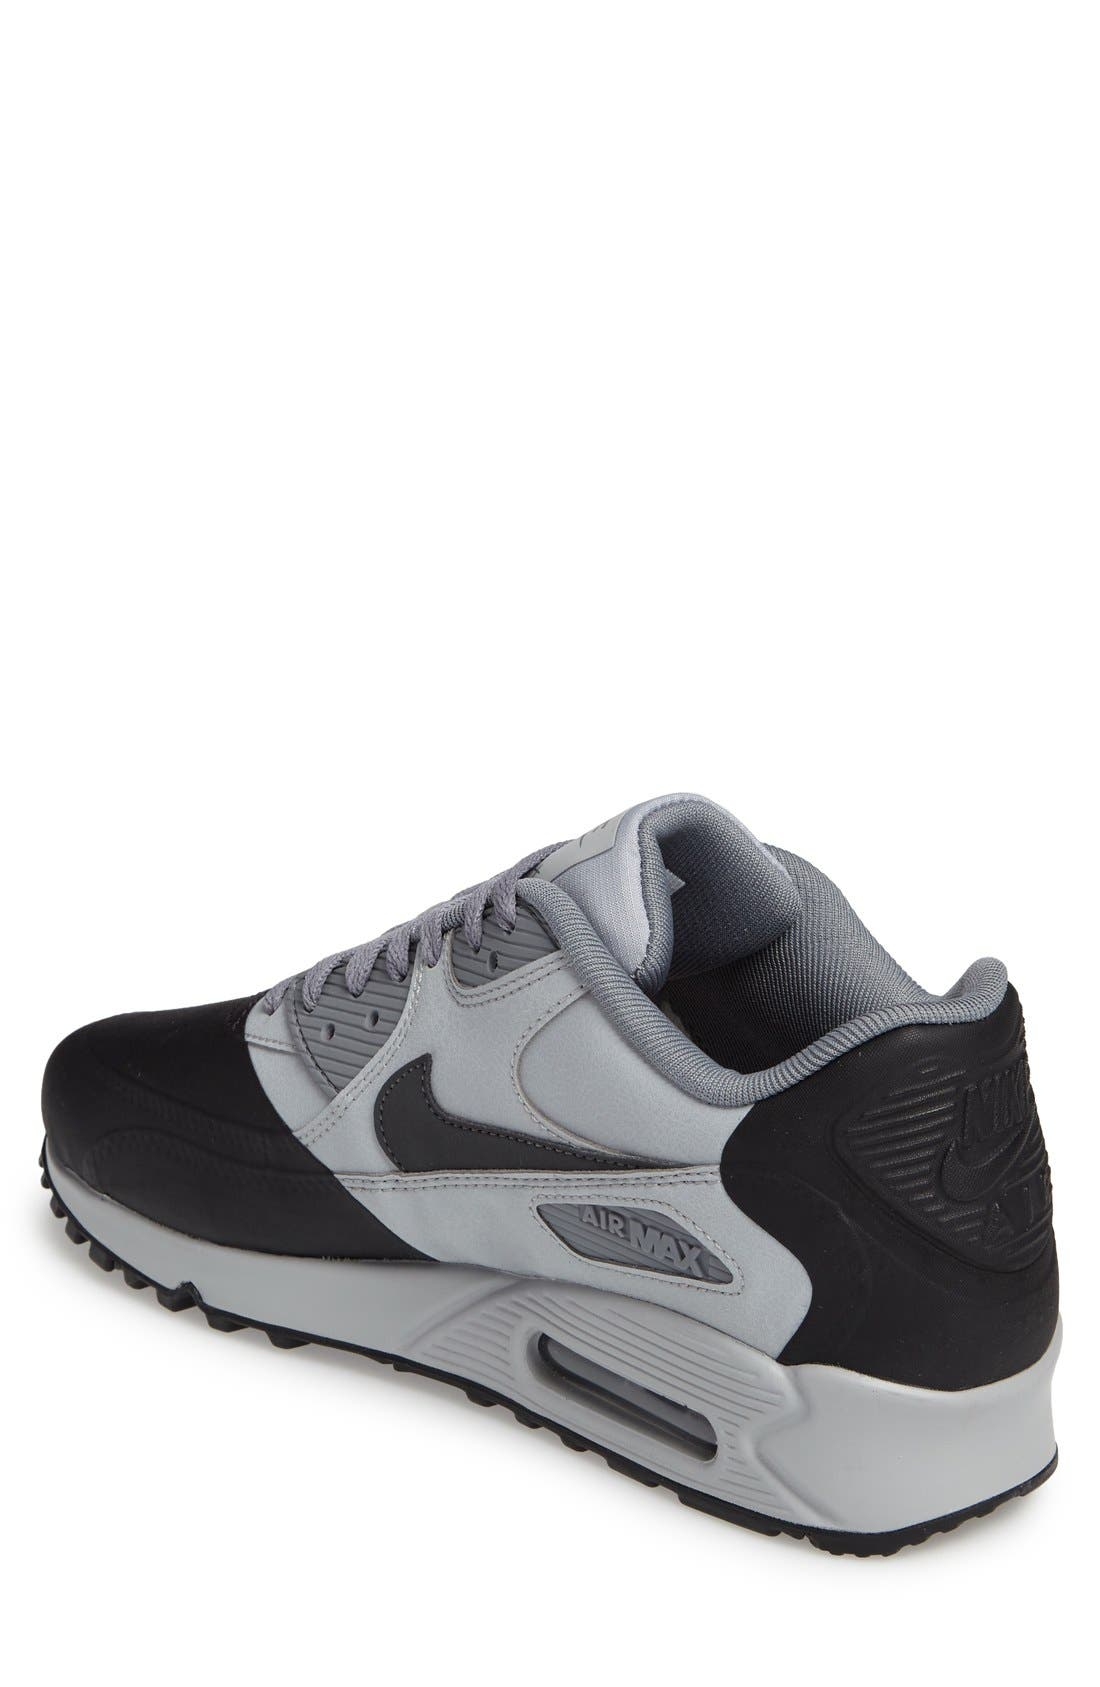 Air Max 90 Premium Sneaker,                             Alternate thumbnail 12, color,